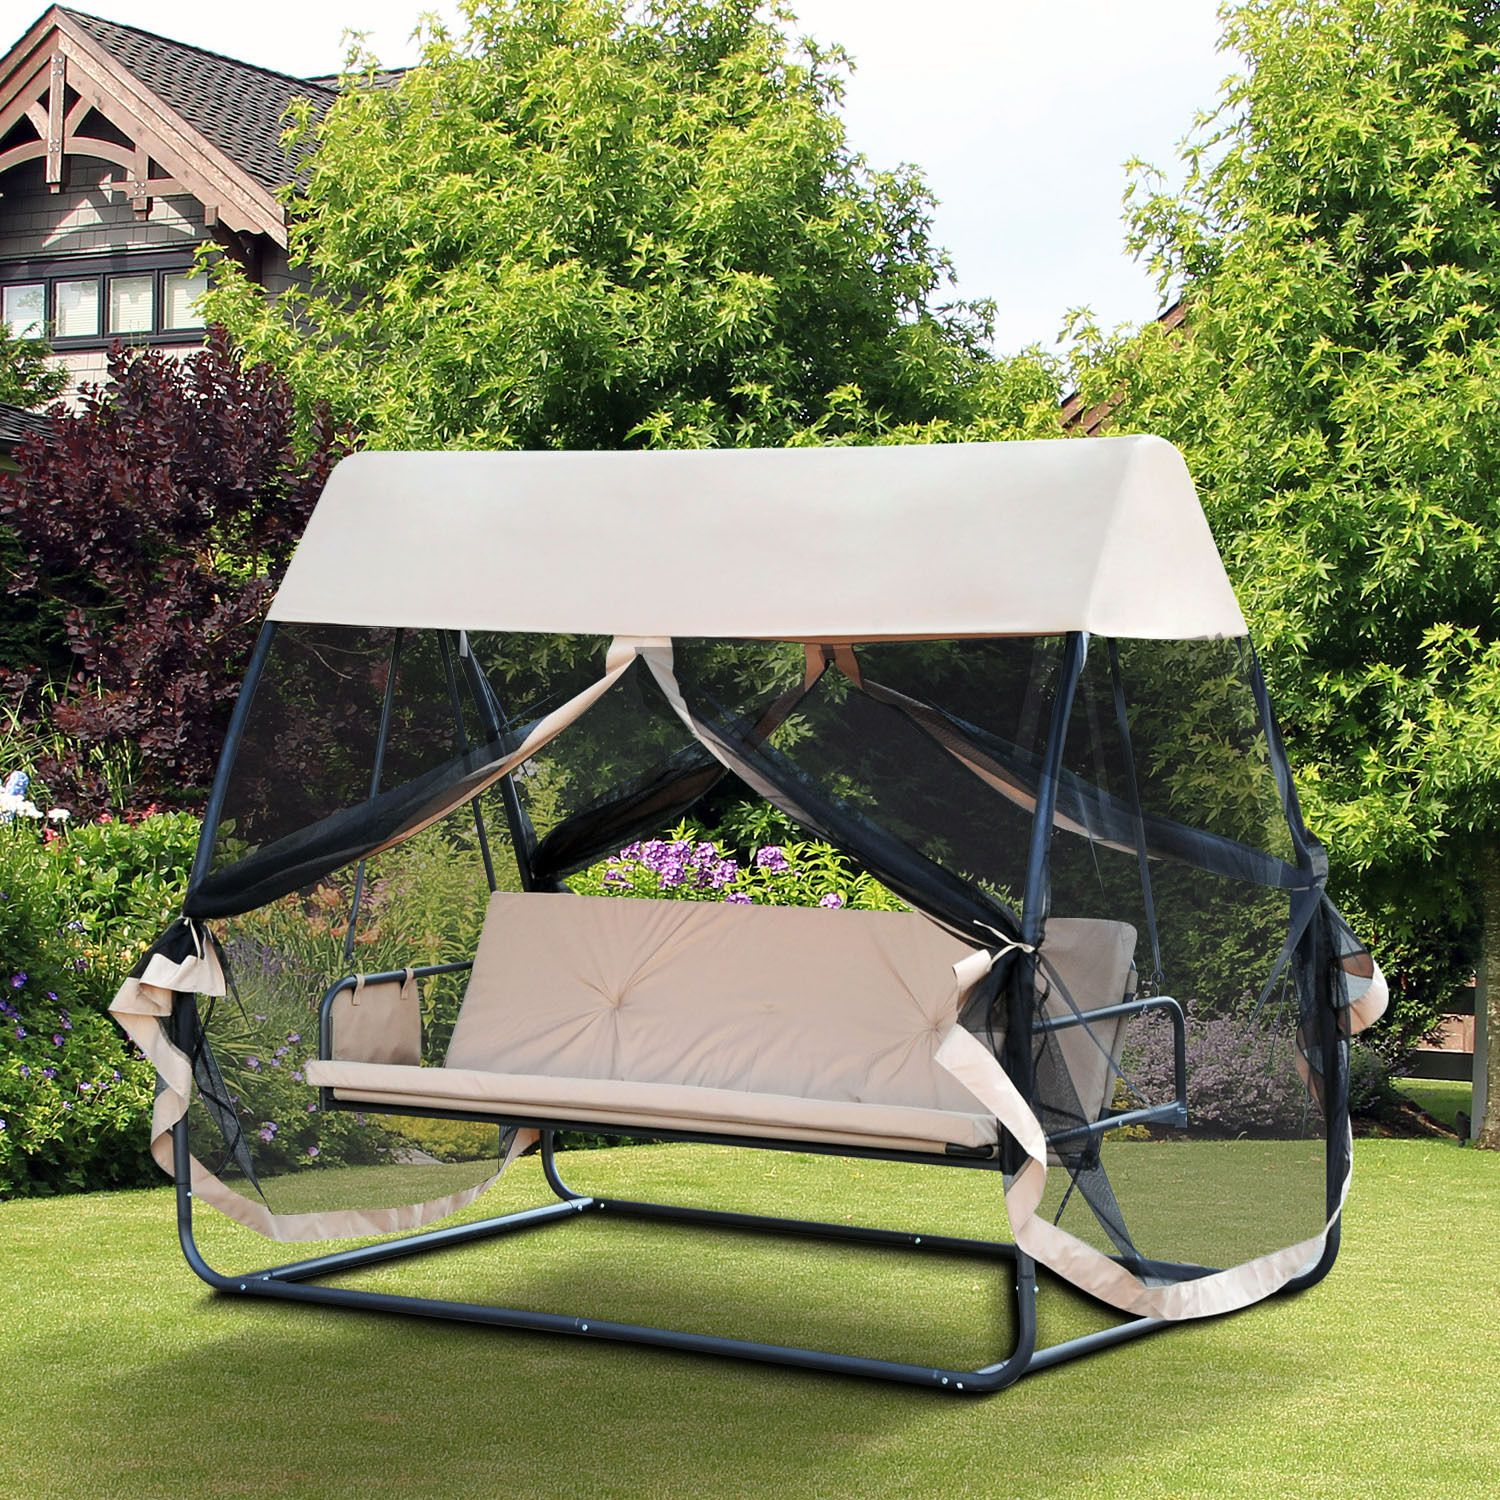 Patio Swing Hammock Outdoor Furniture Convertible Bench Chair Bed W Canopy Mesh Canopy Outdoor Canopy Bedroom Patio Swing